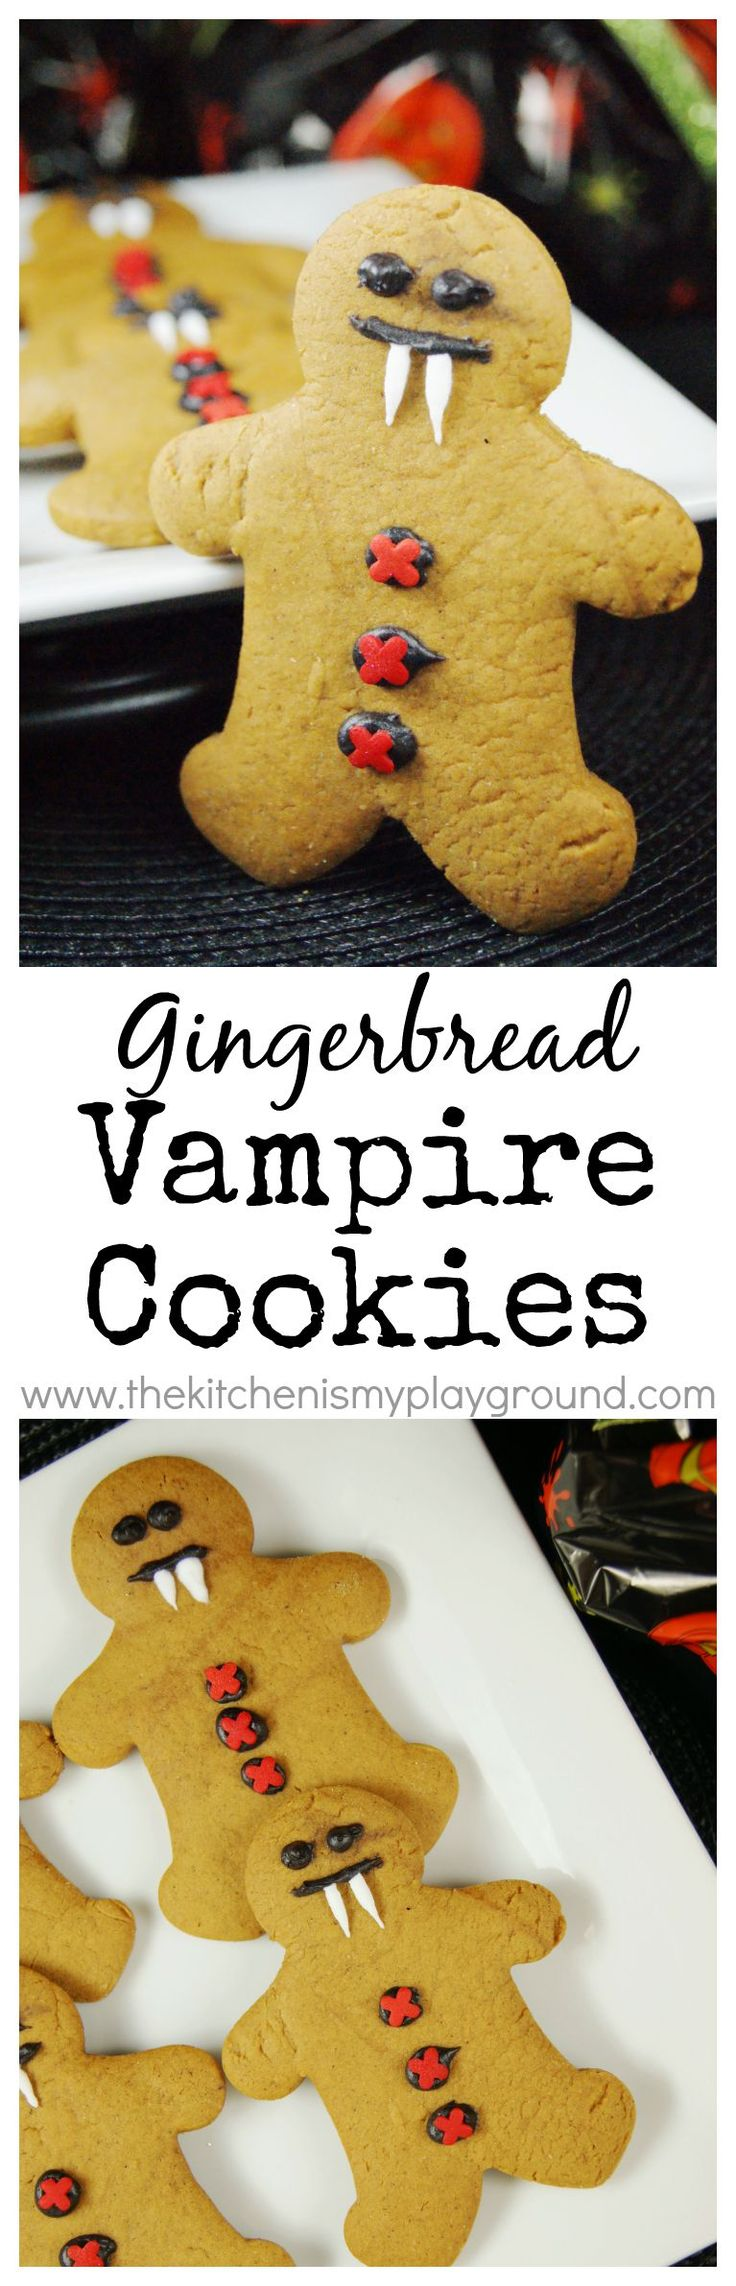 Gingerbread Vampire Cookies ~ these adorable gingerbread men have on their vampire costumes for Halloween! www.thekitchenismyplayground.com